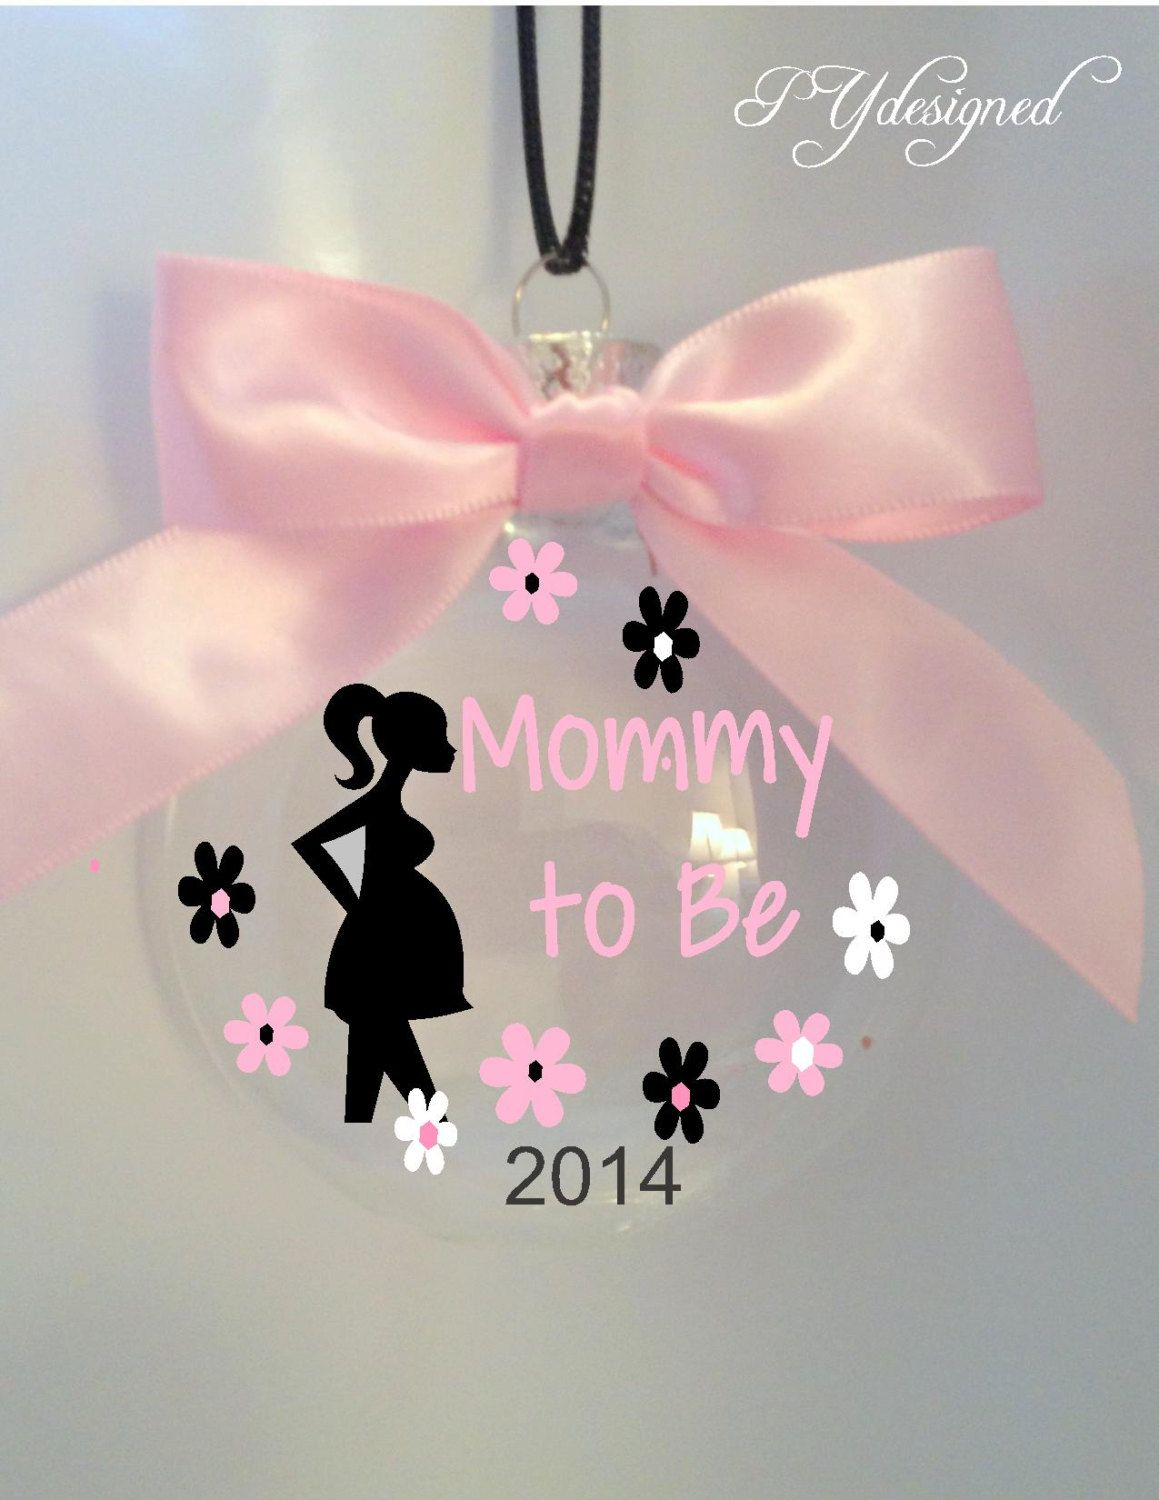 Christmas ornament expecting baby - Mommy To Be Christmas Ornament For Pregnant Mother To Be Expecting A Baby By Pydesigned On